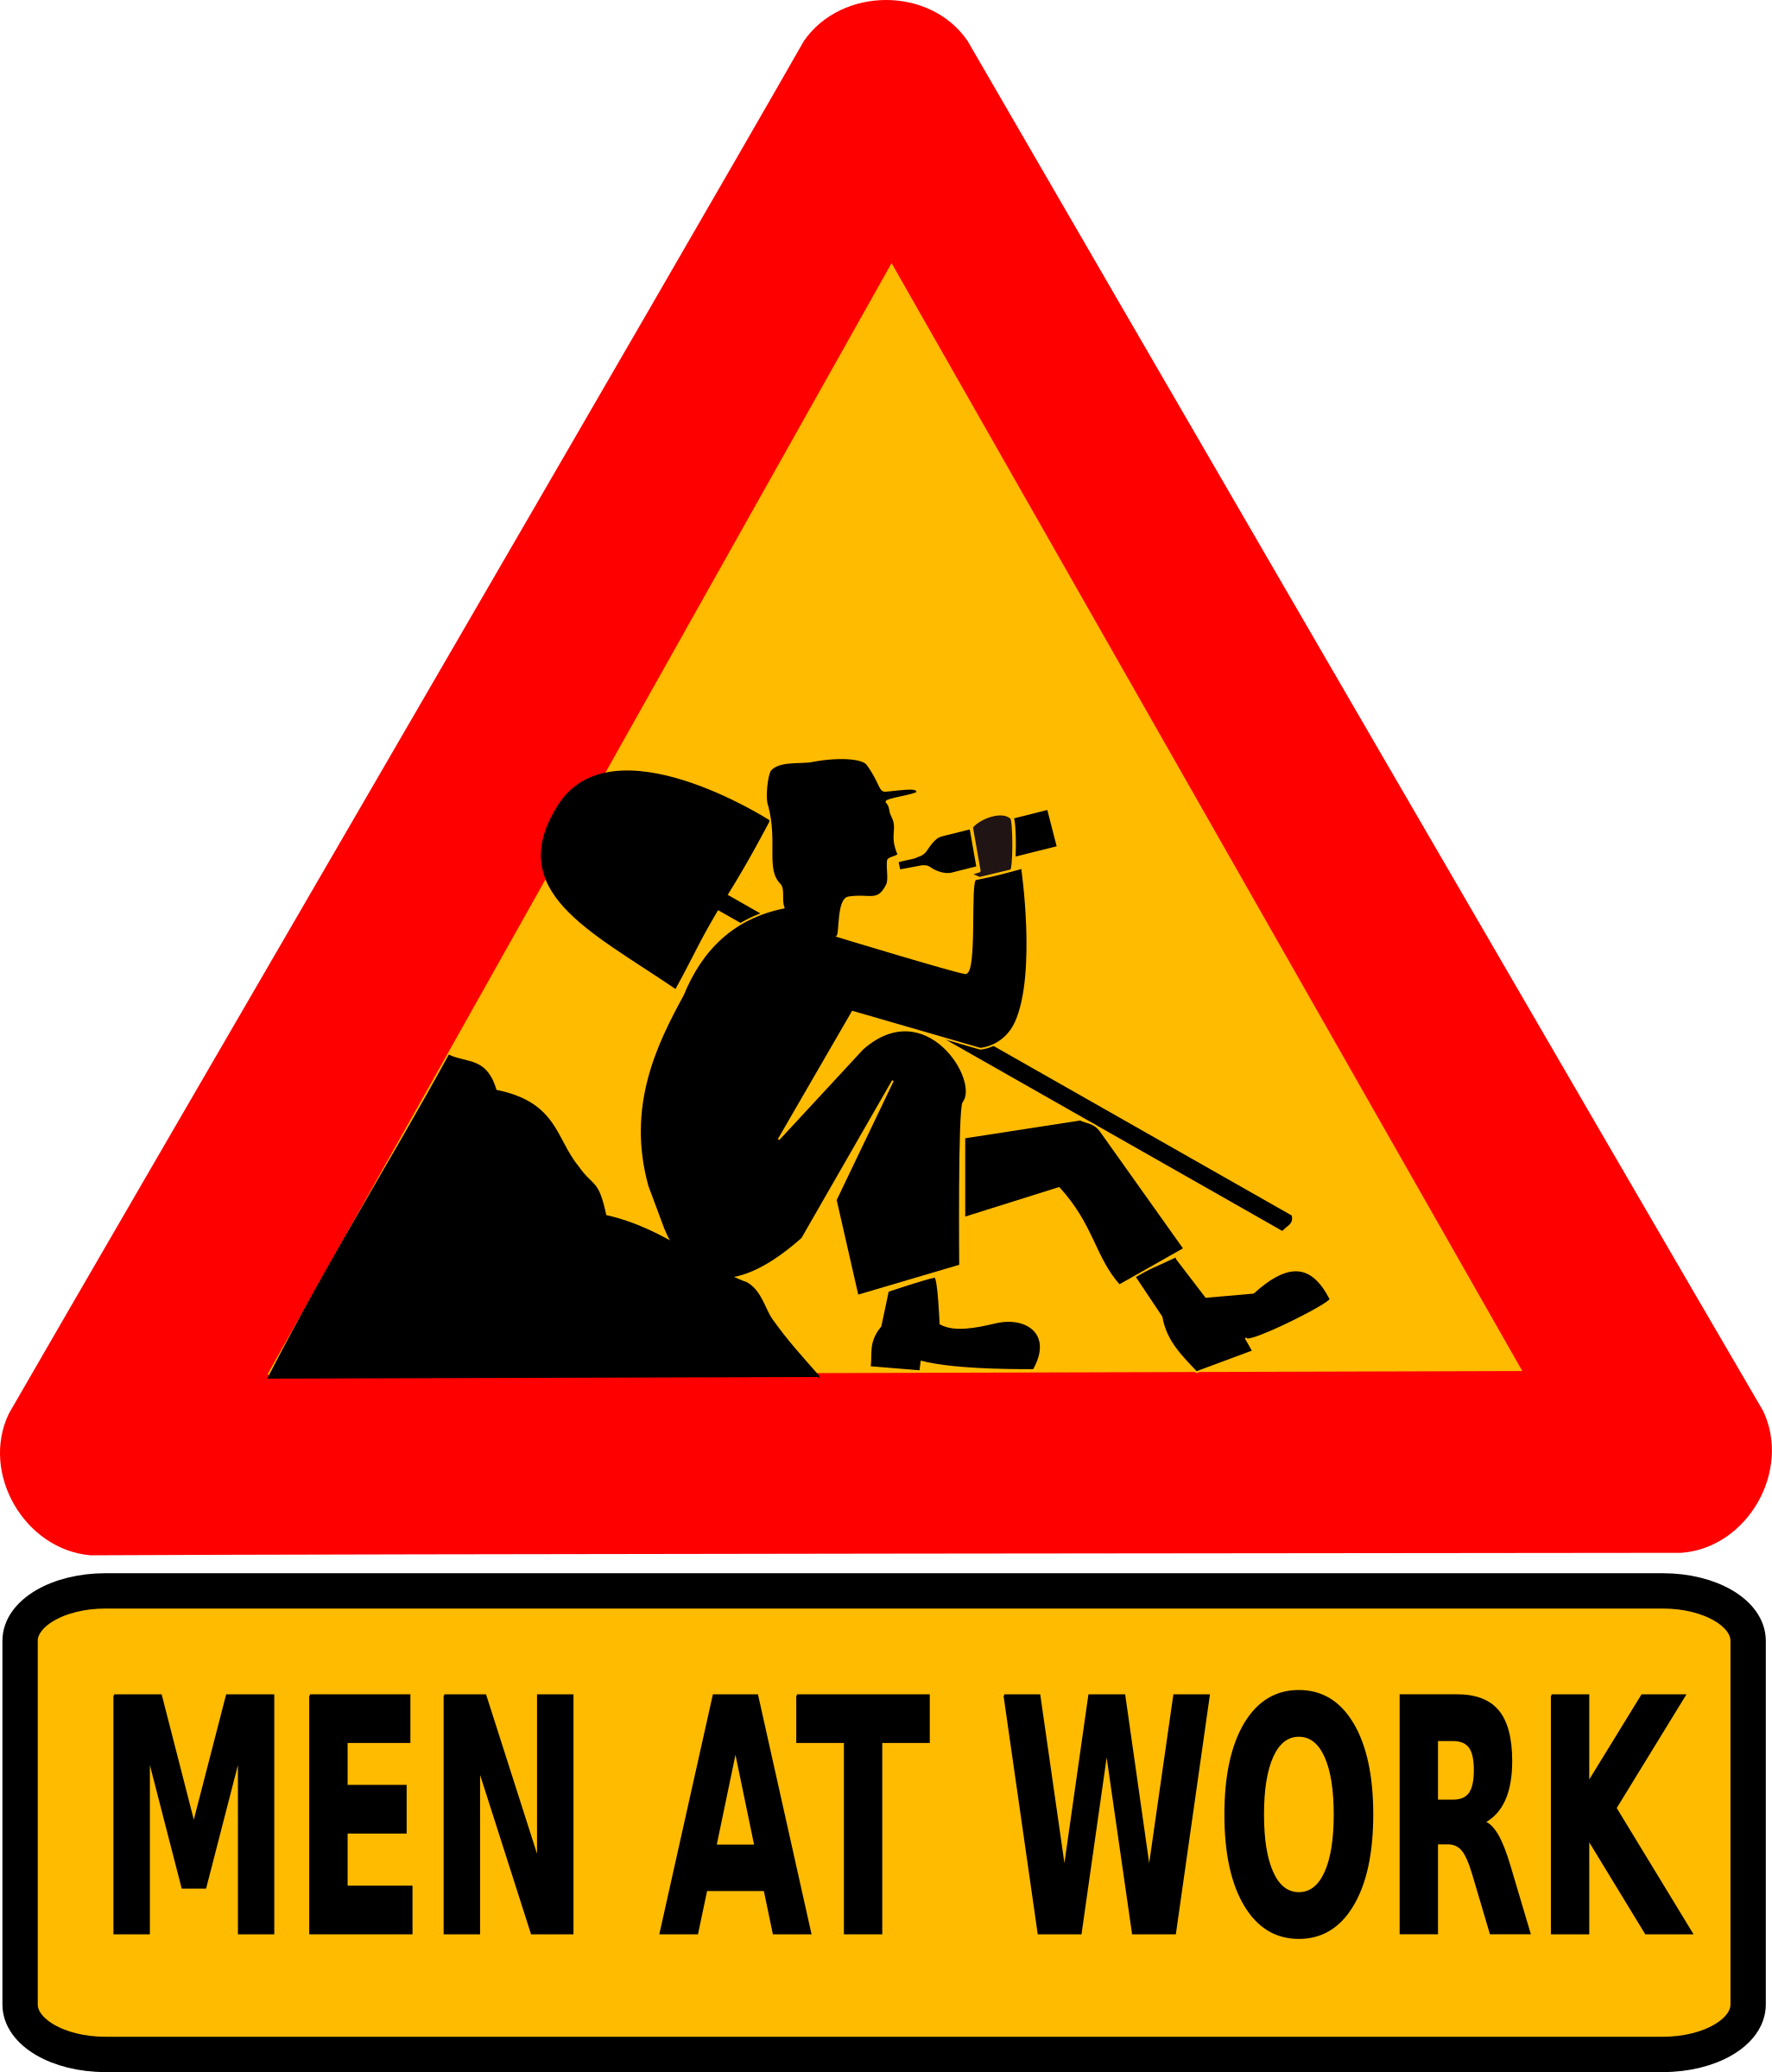 Men at work big. Working clipart other clipart